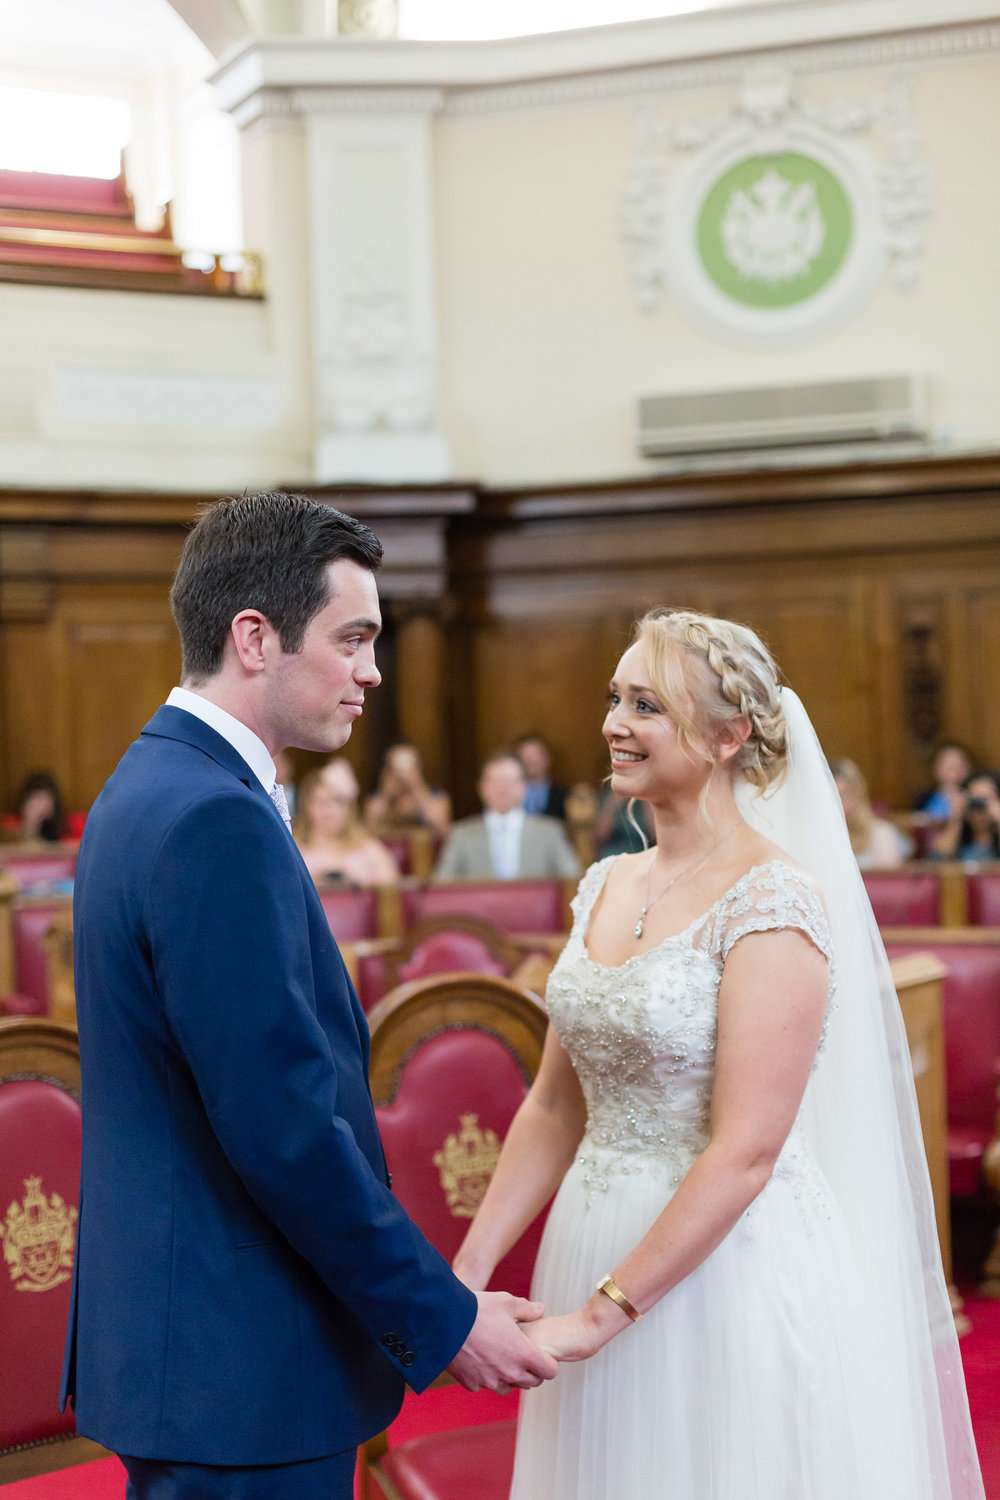 islington-town-hall-wedding-anthologist-gresham-street-reception-165.jpg